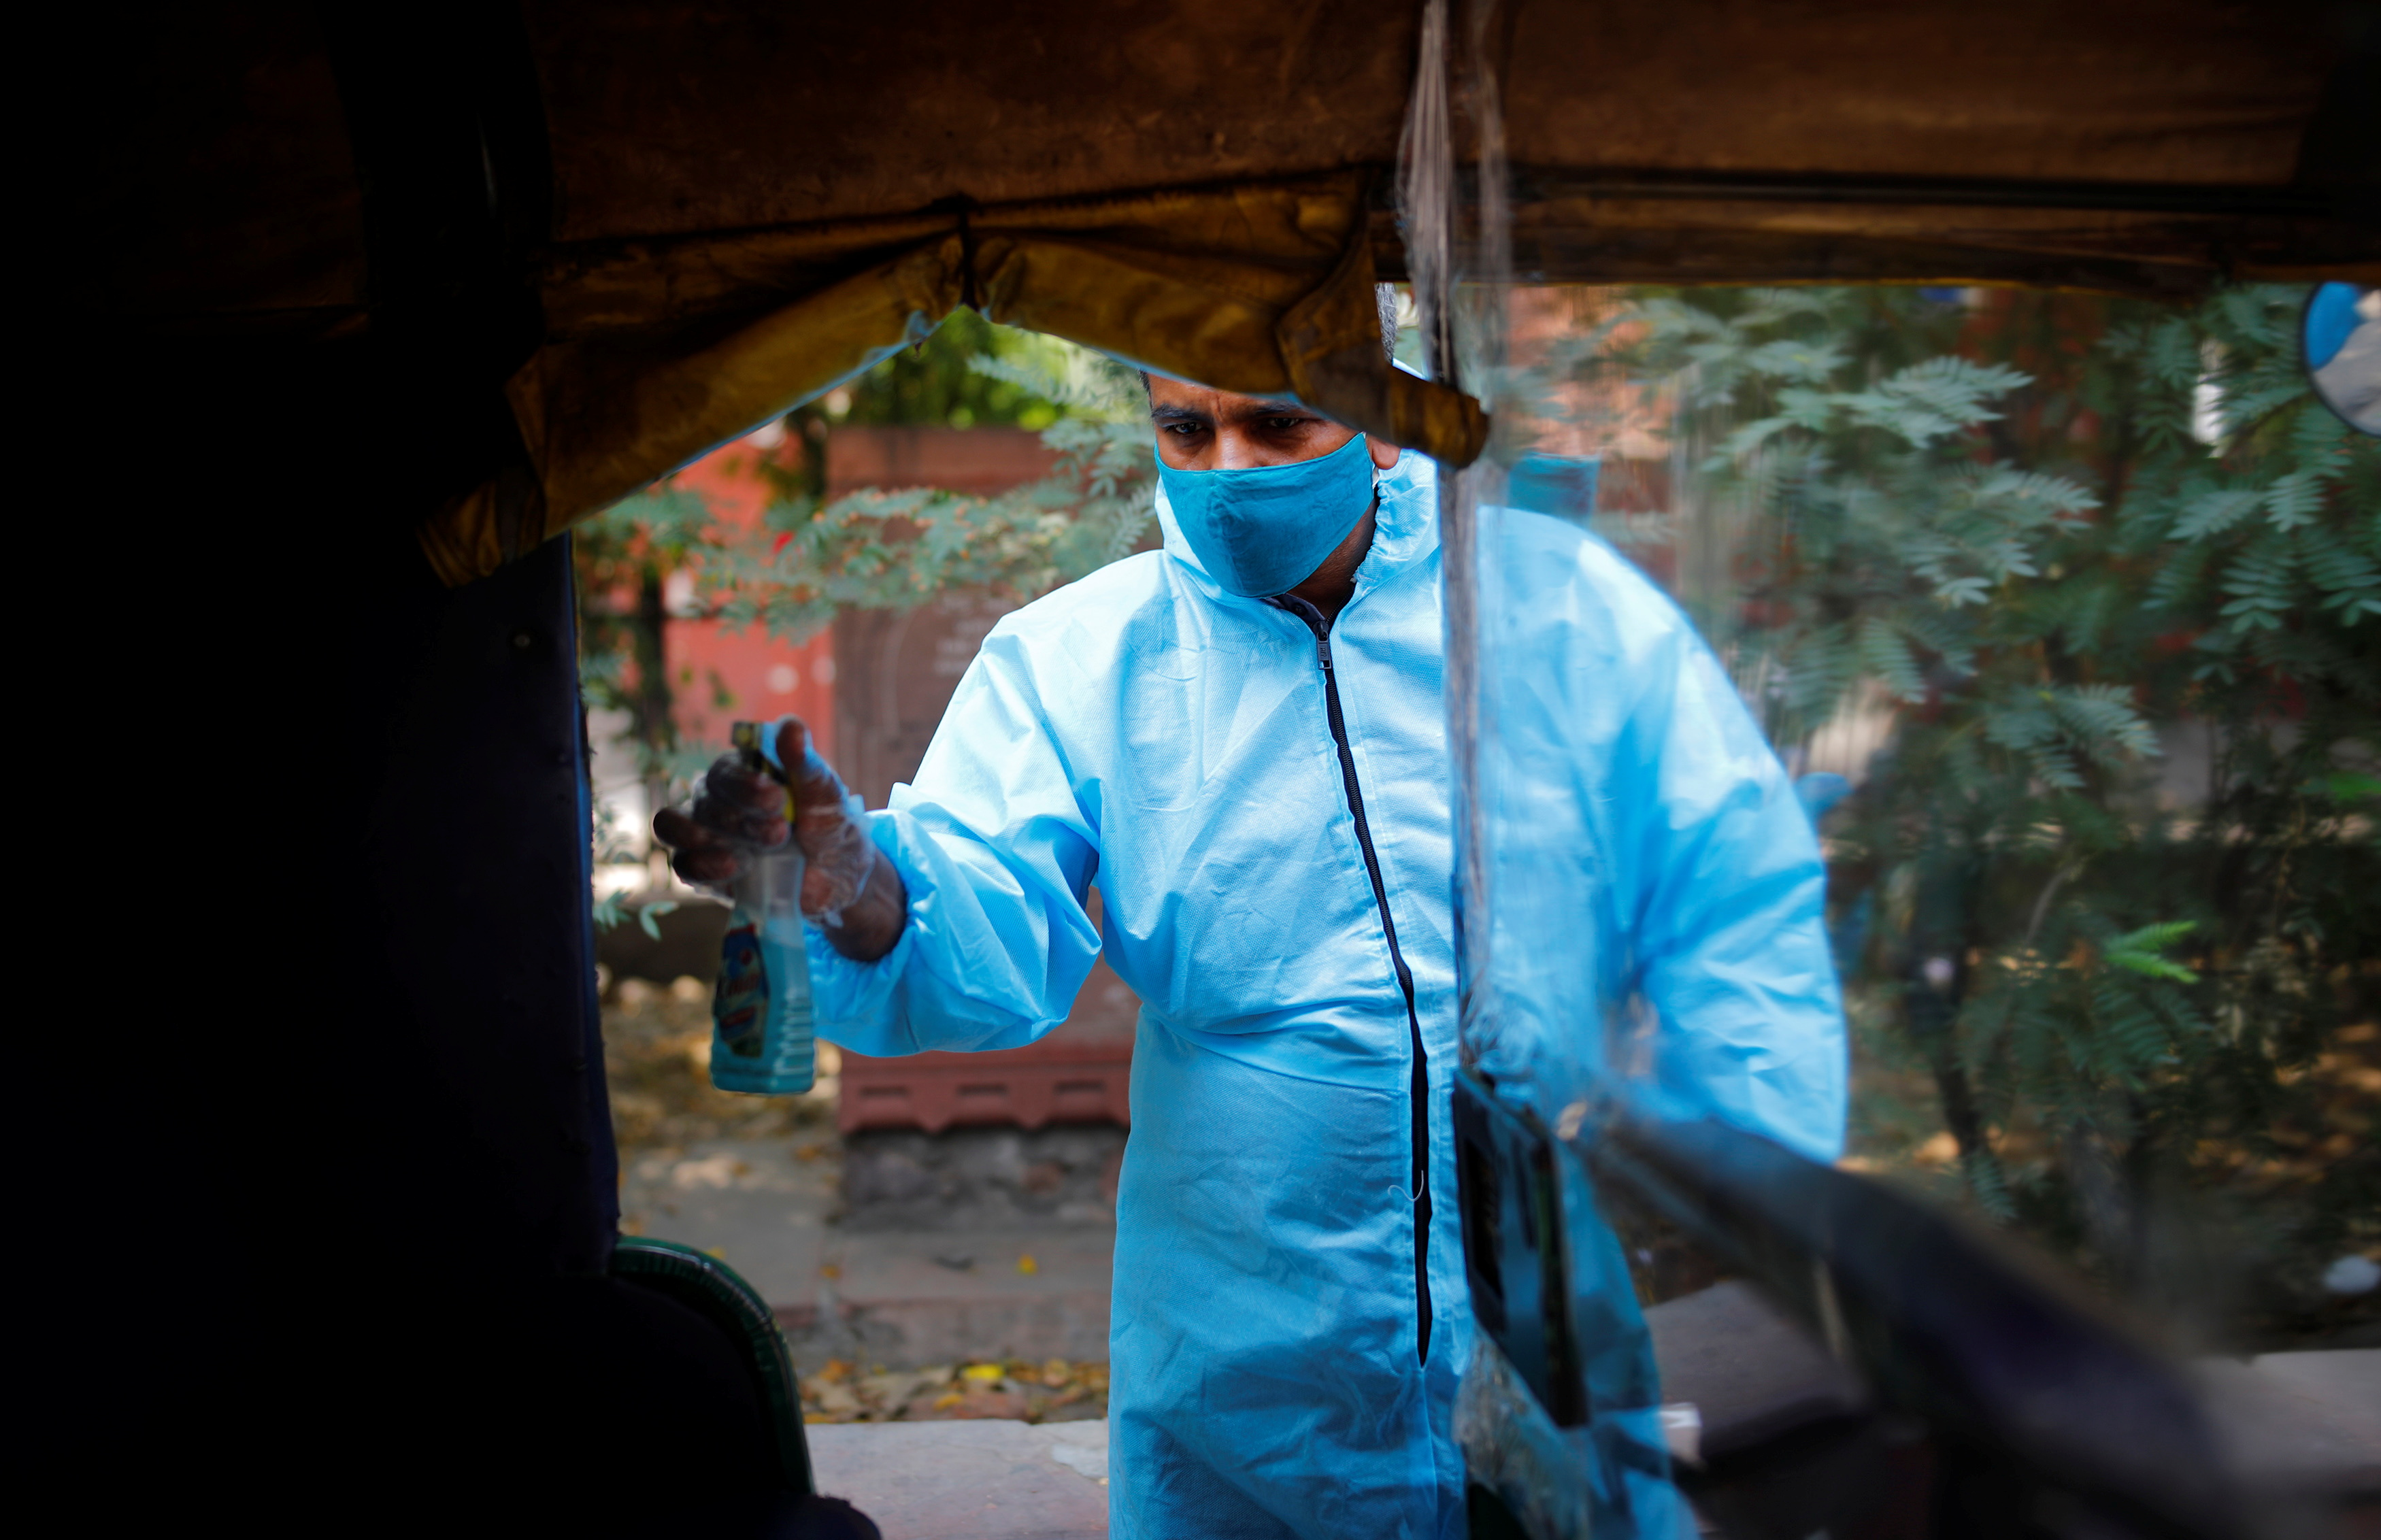 Raj Kumar, 42, a driver of an auto rickshaw ambulance which is prepared to transfer people suffering from the coronavirus disease (COVID-19) and their relatives for free, sanitizes his vehicle in New Delhi, India May 6, 2021. REUTERS/Adnan Abidi